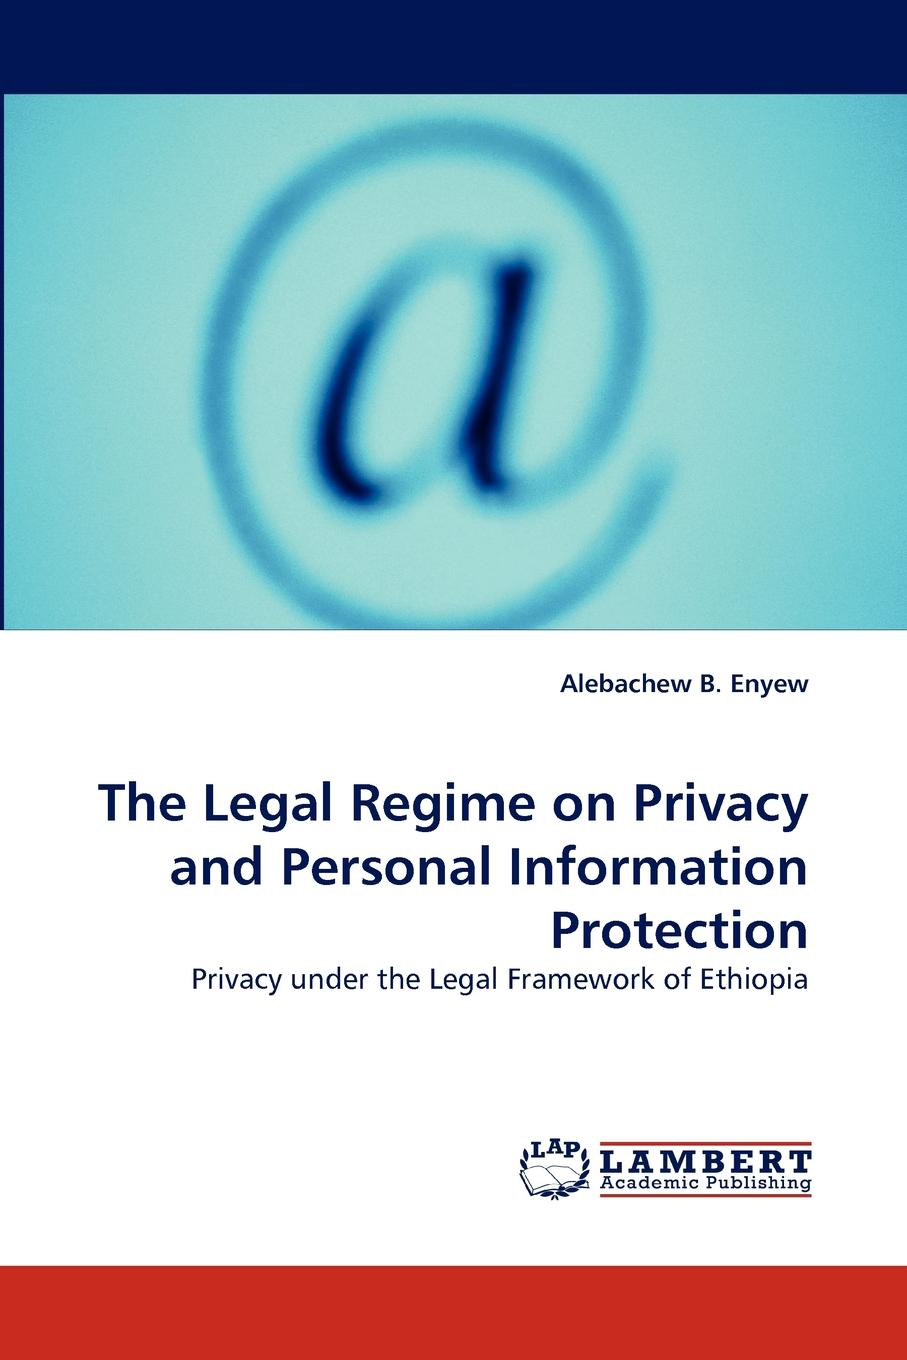 Alebachew B. Enyew The Legal Regime on Privacy and Personal Information Protection david holtzman h privacy lost how technology is endangering your privacy